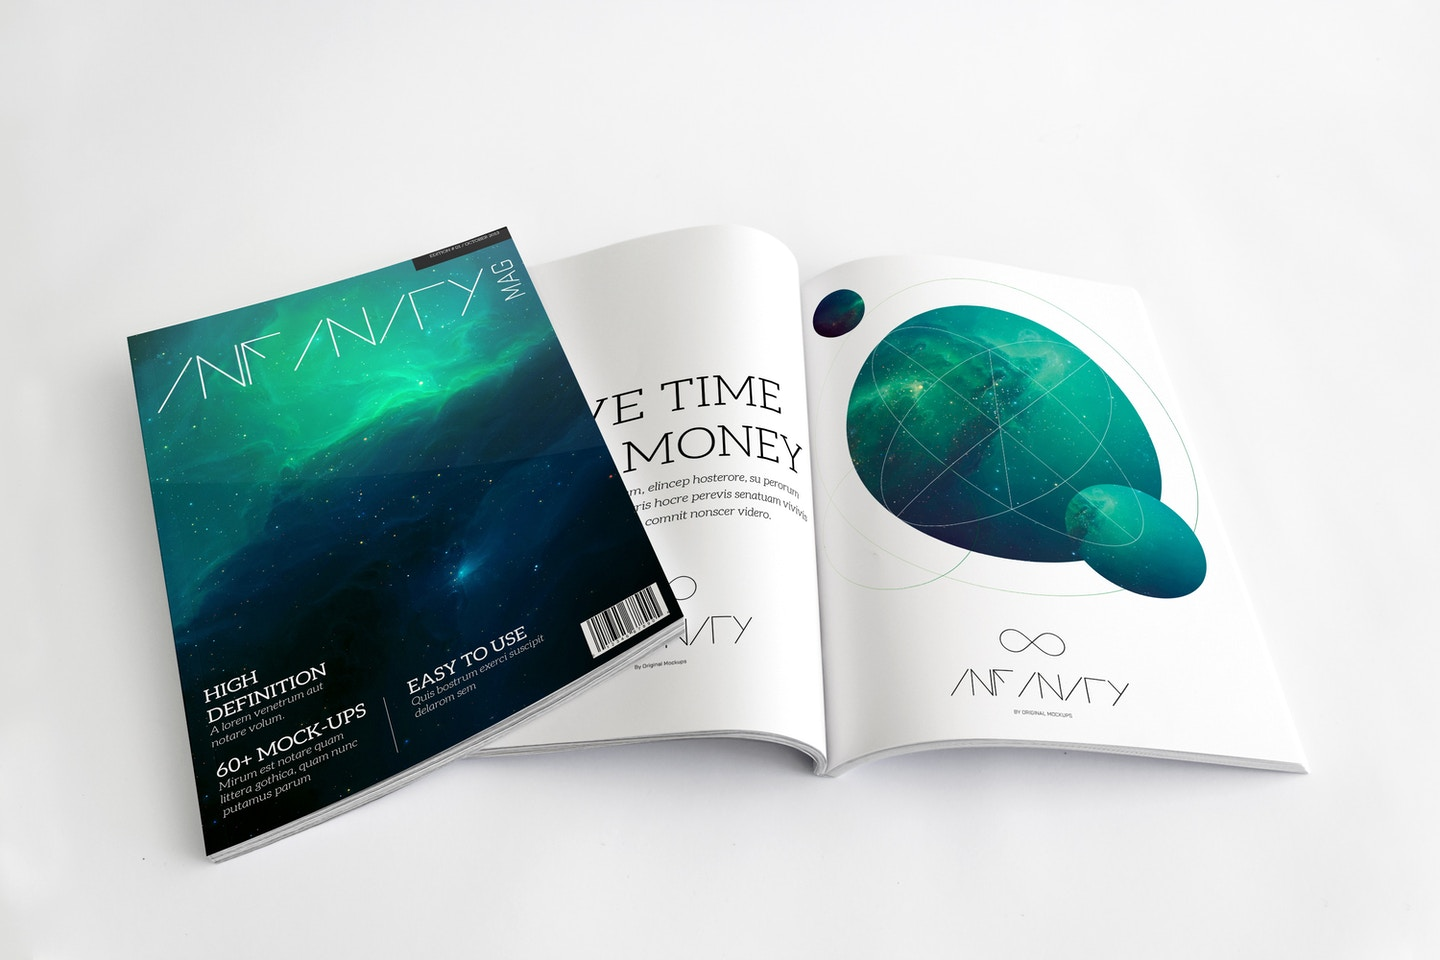 A4 Magazine Mockup for Cover & Spread Page 01